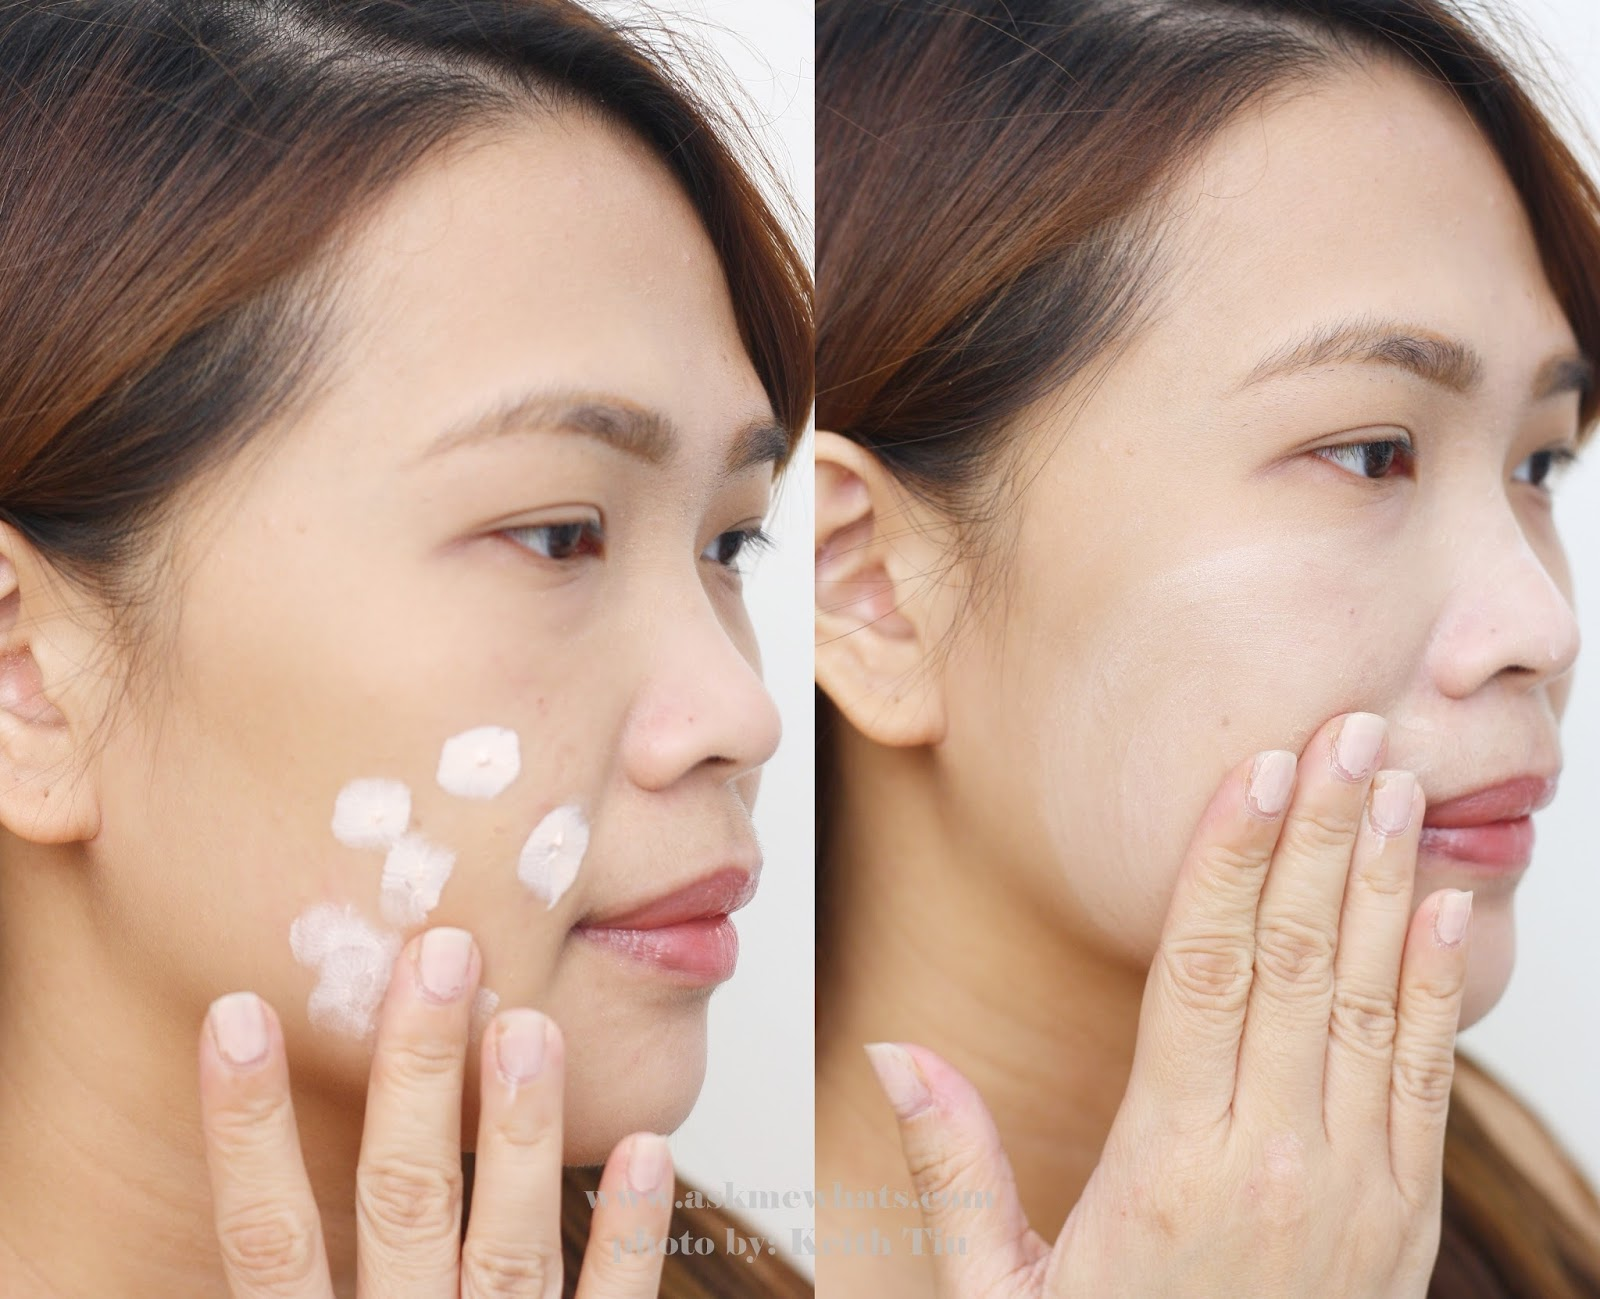 Before and after photo using Etude House Beauty Shot Face Blur review